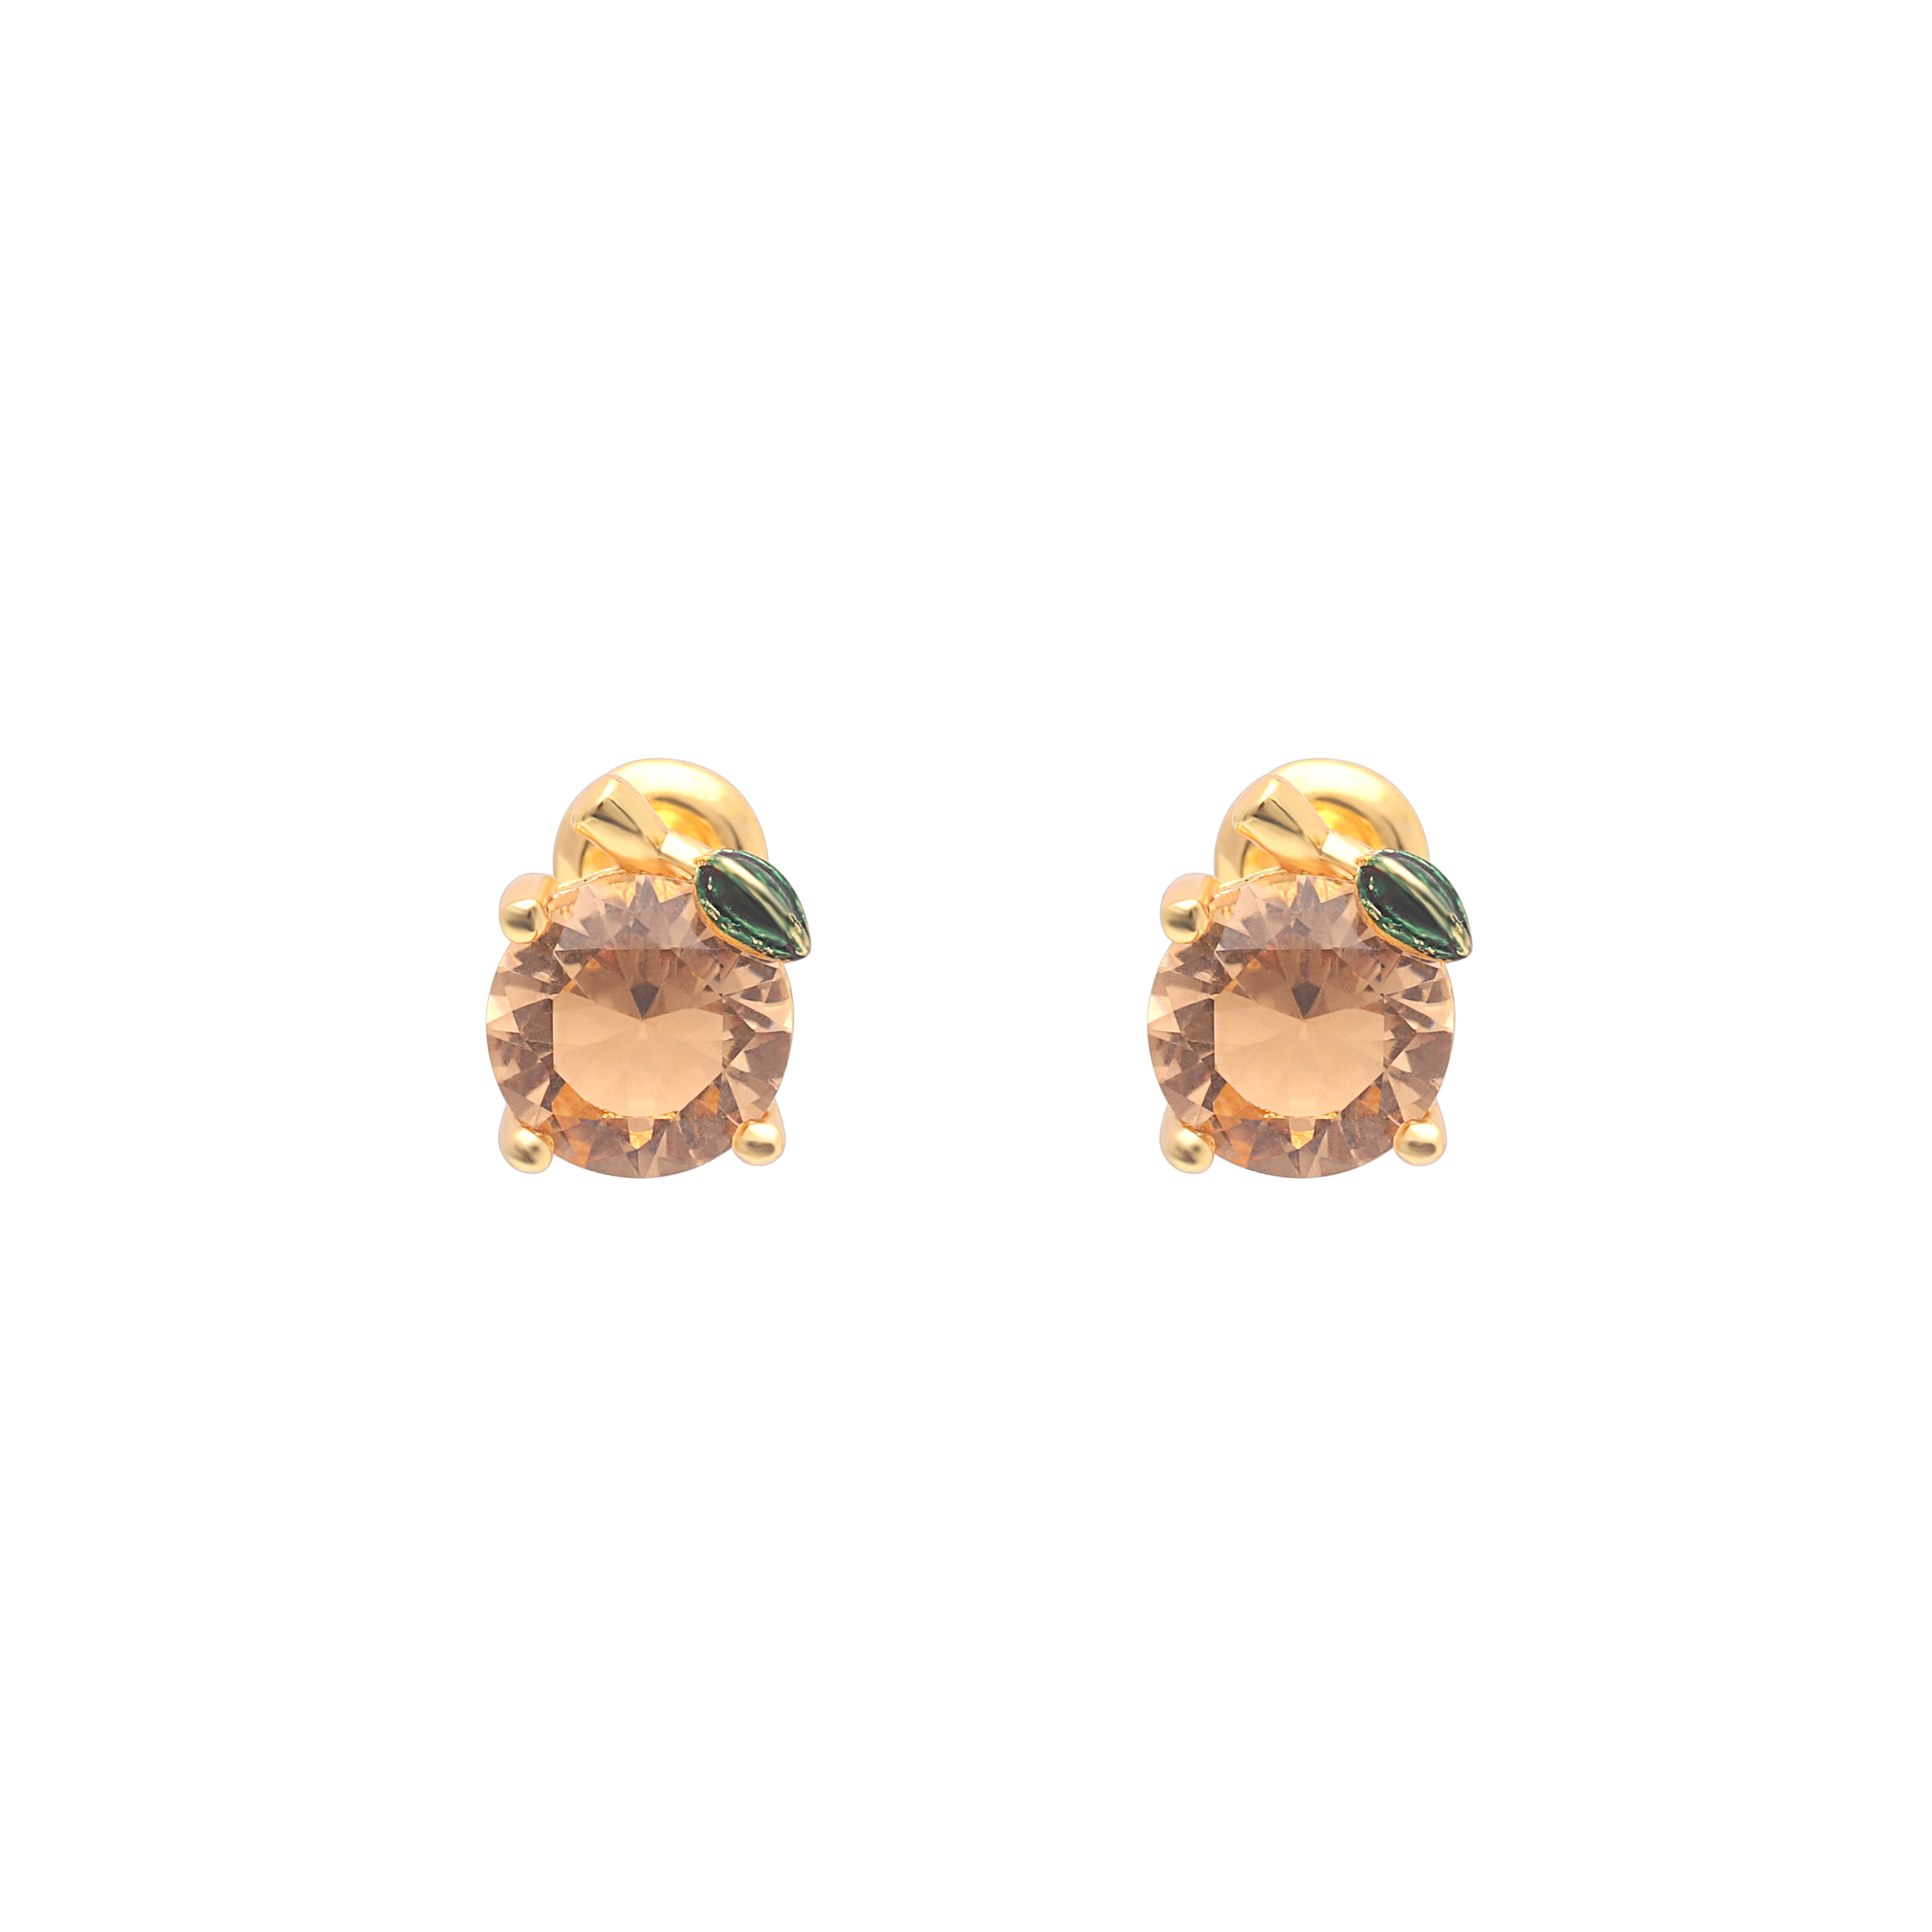 Ufooro Round Brown Color Zircon Jewelry Classic Fashion Gold Color Stud Earrings For Women Engagement Accessories Girls Gift